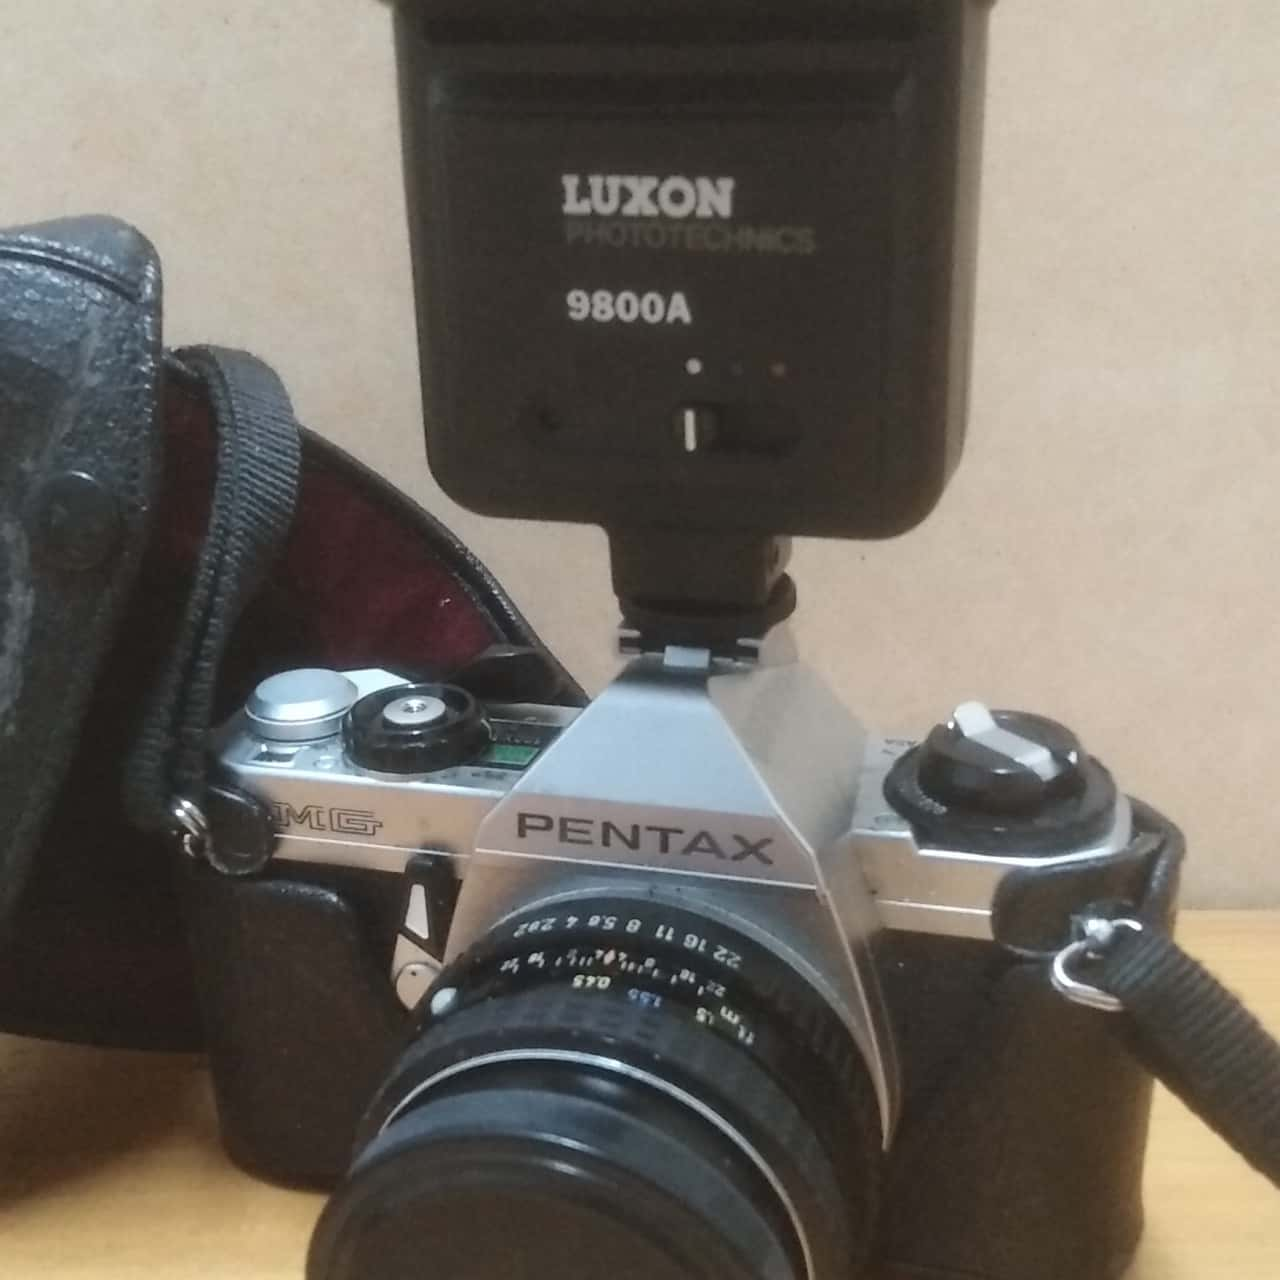 Camera PENTAX SLR  with LUXON LENS and ASAHI PENTAX LENS with Case. Untested